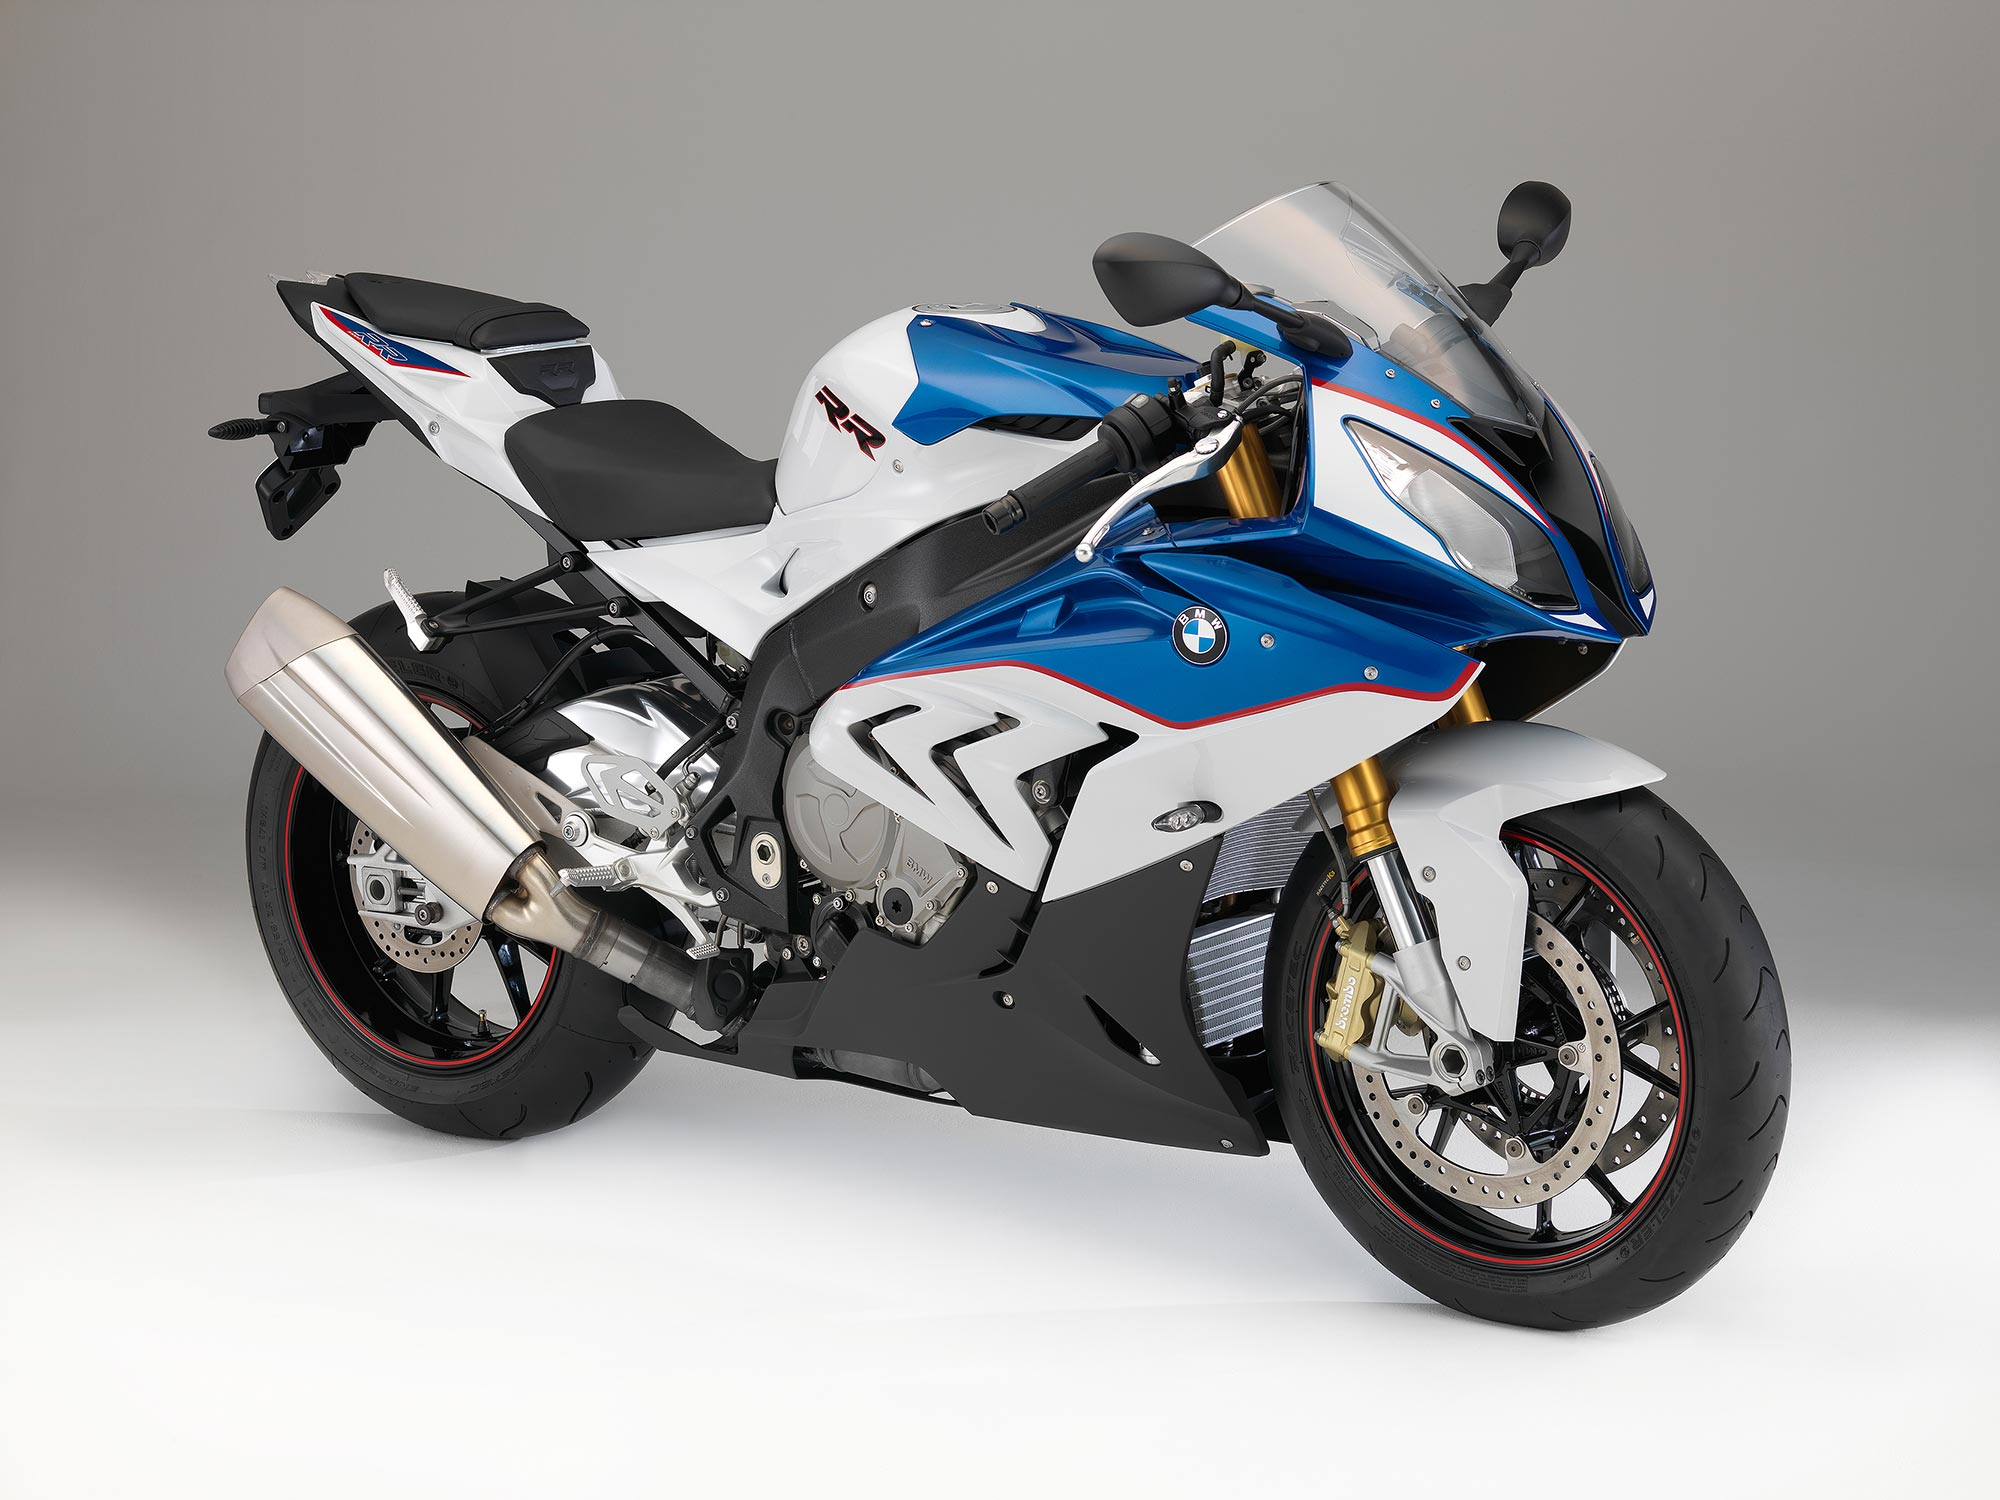 2015 Bmw S1000rr 199hp New Chassis Cruise Control Asphalt